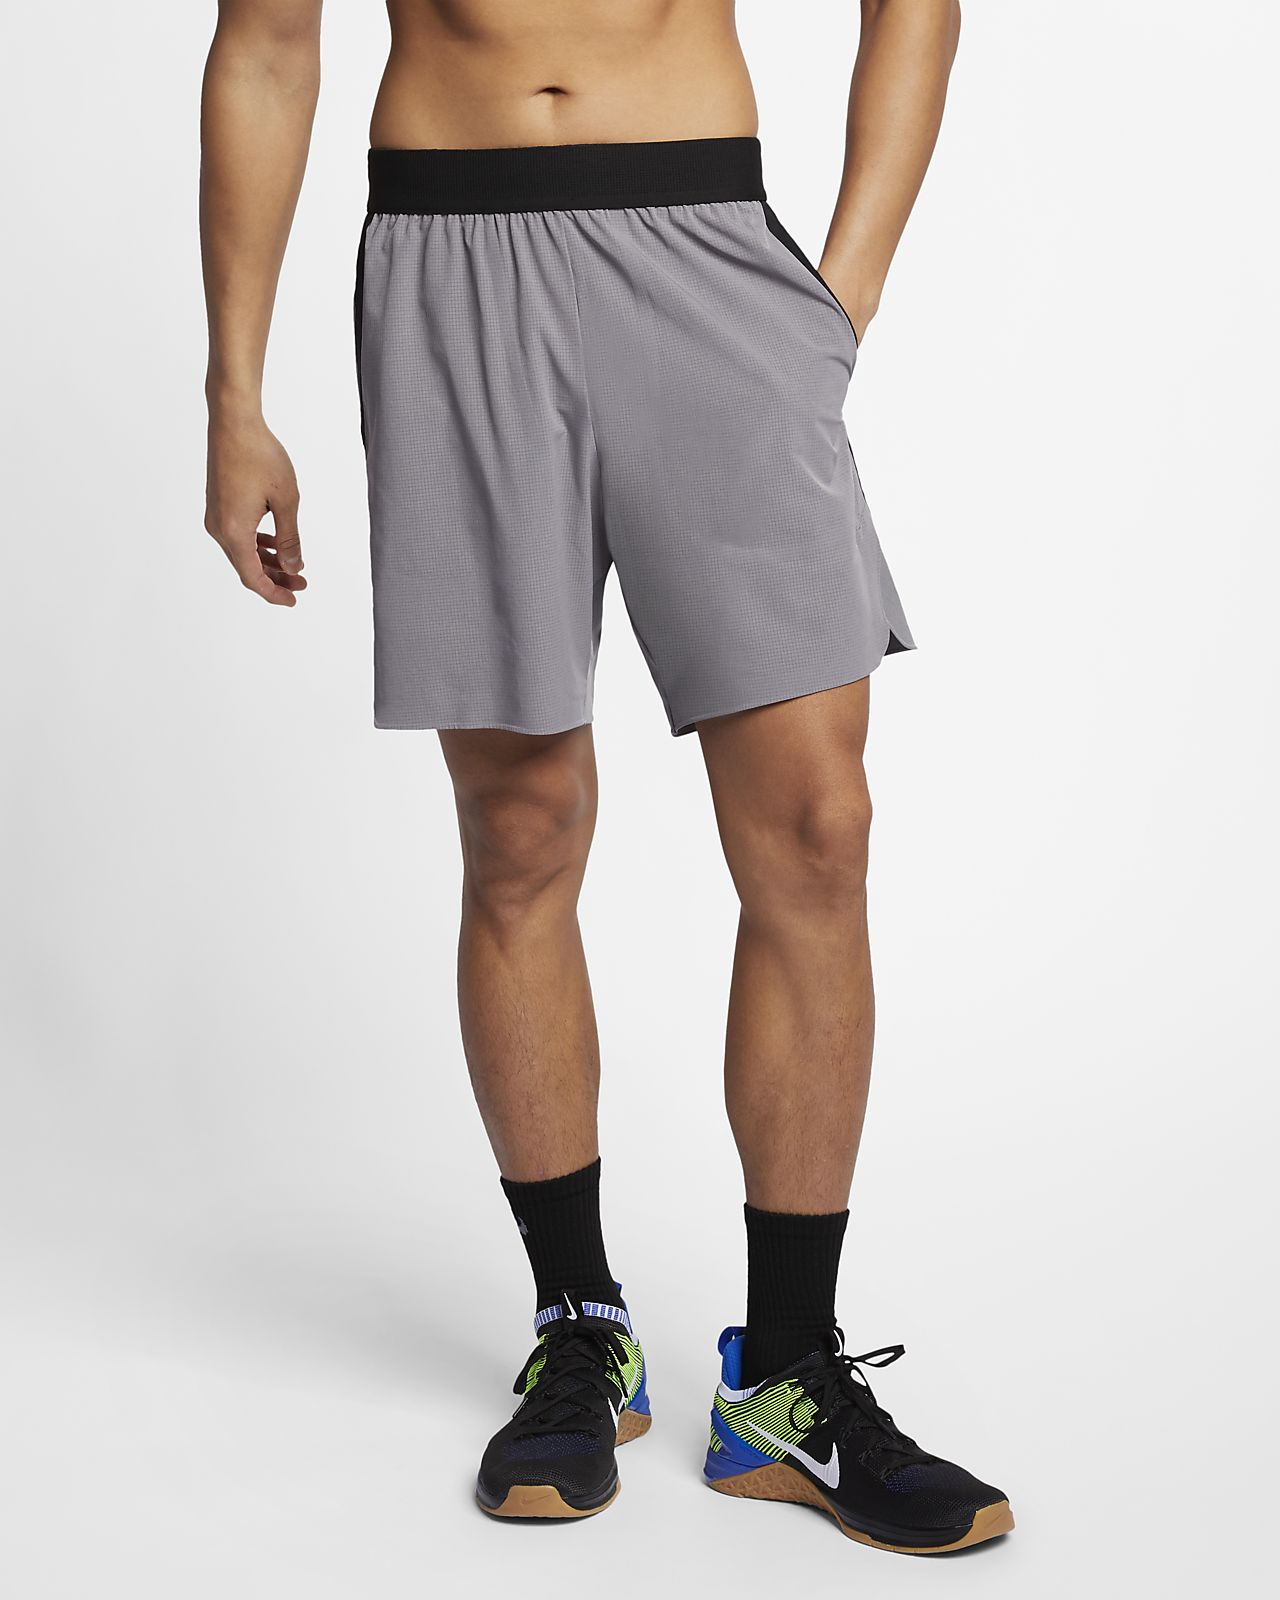 706638db7163 Nike Flex Tech Pack Men s Training Shorts. Nike.com IL